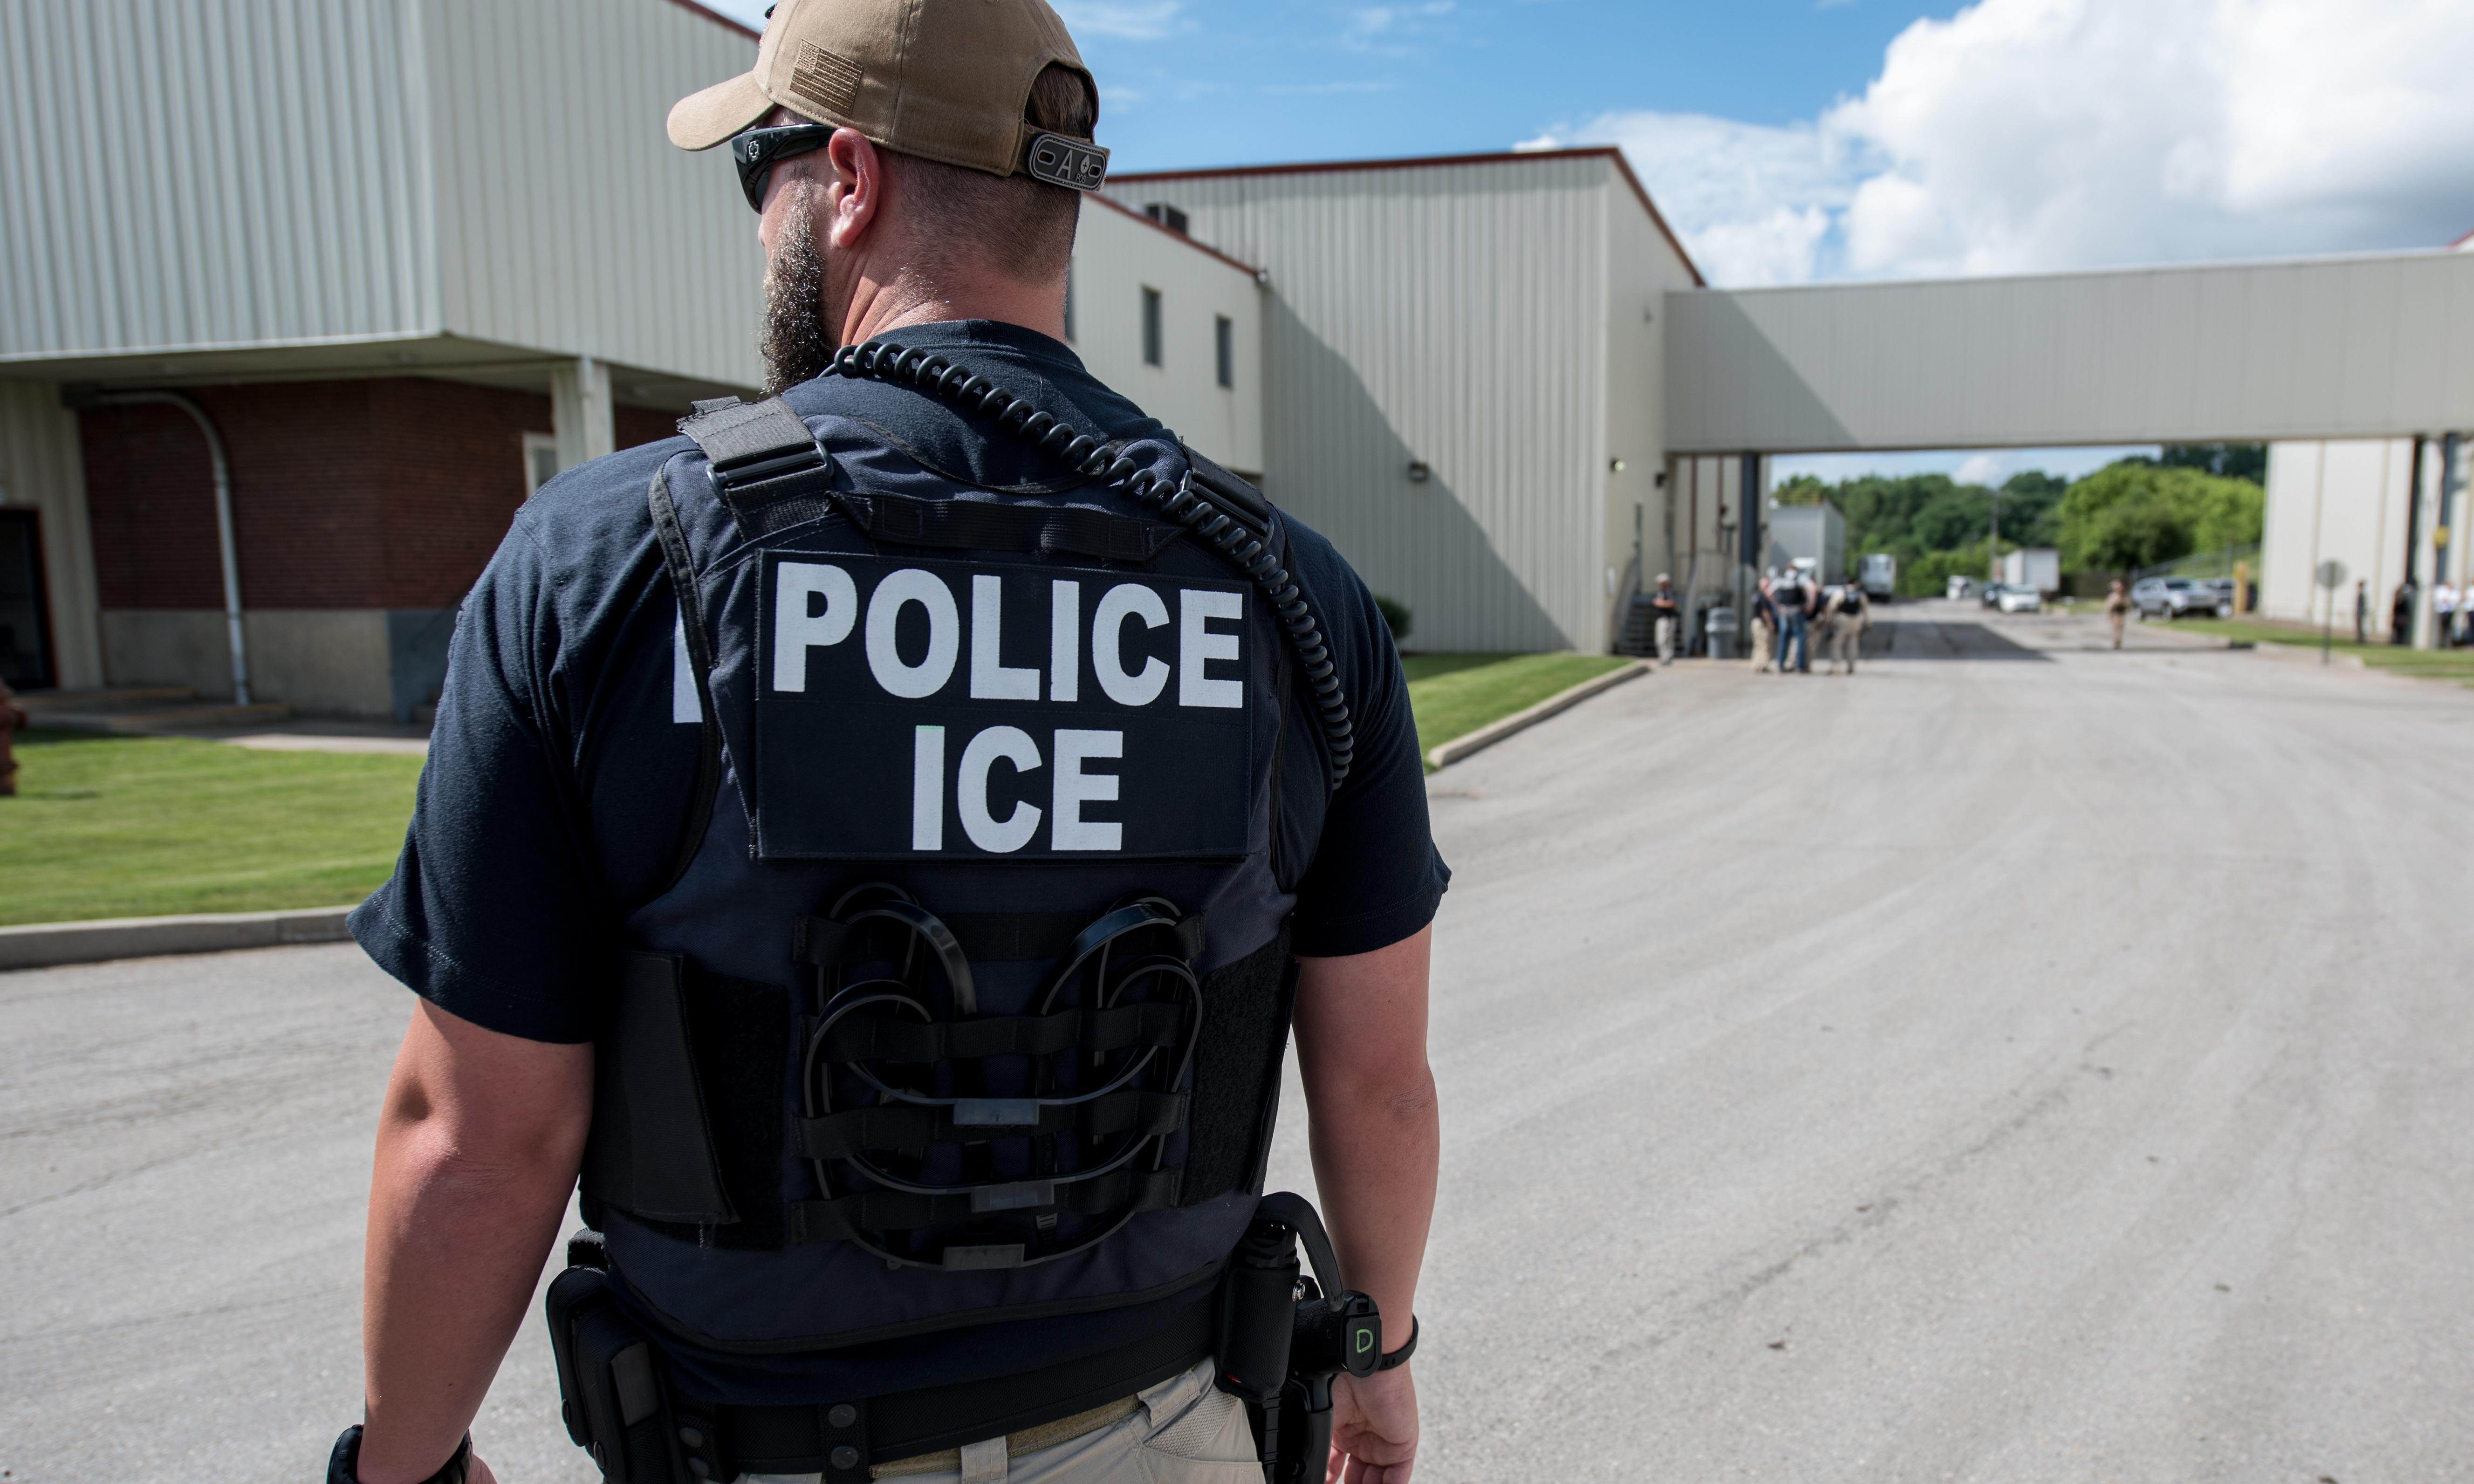 100 armed agents and 143 arrests: the Ice raid that traumatized a small Ohio town